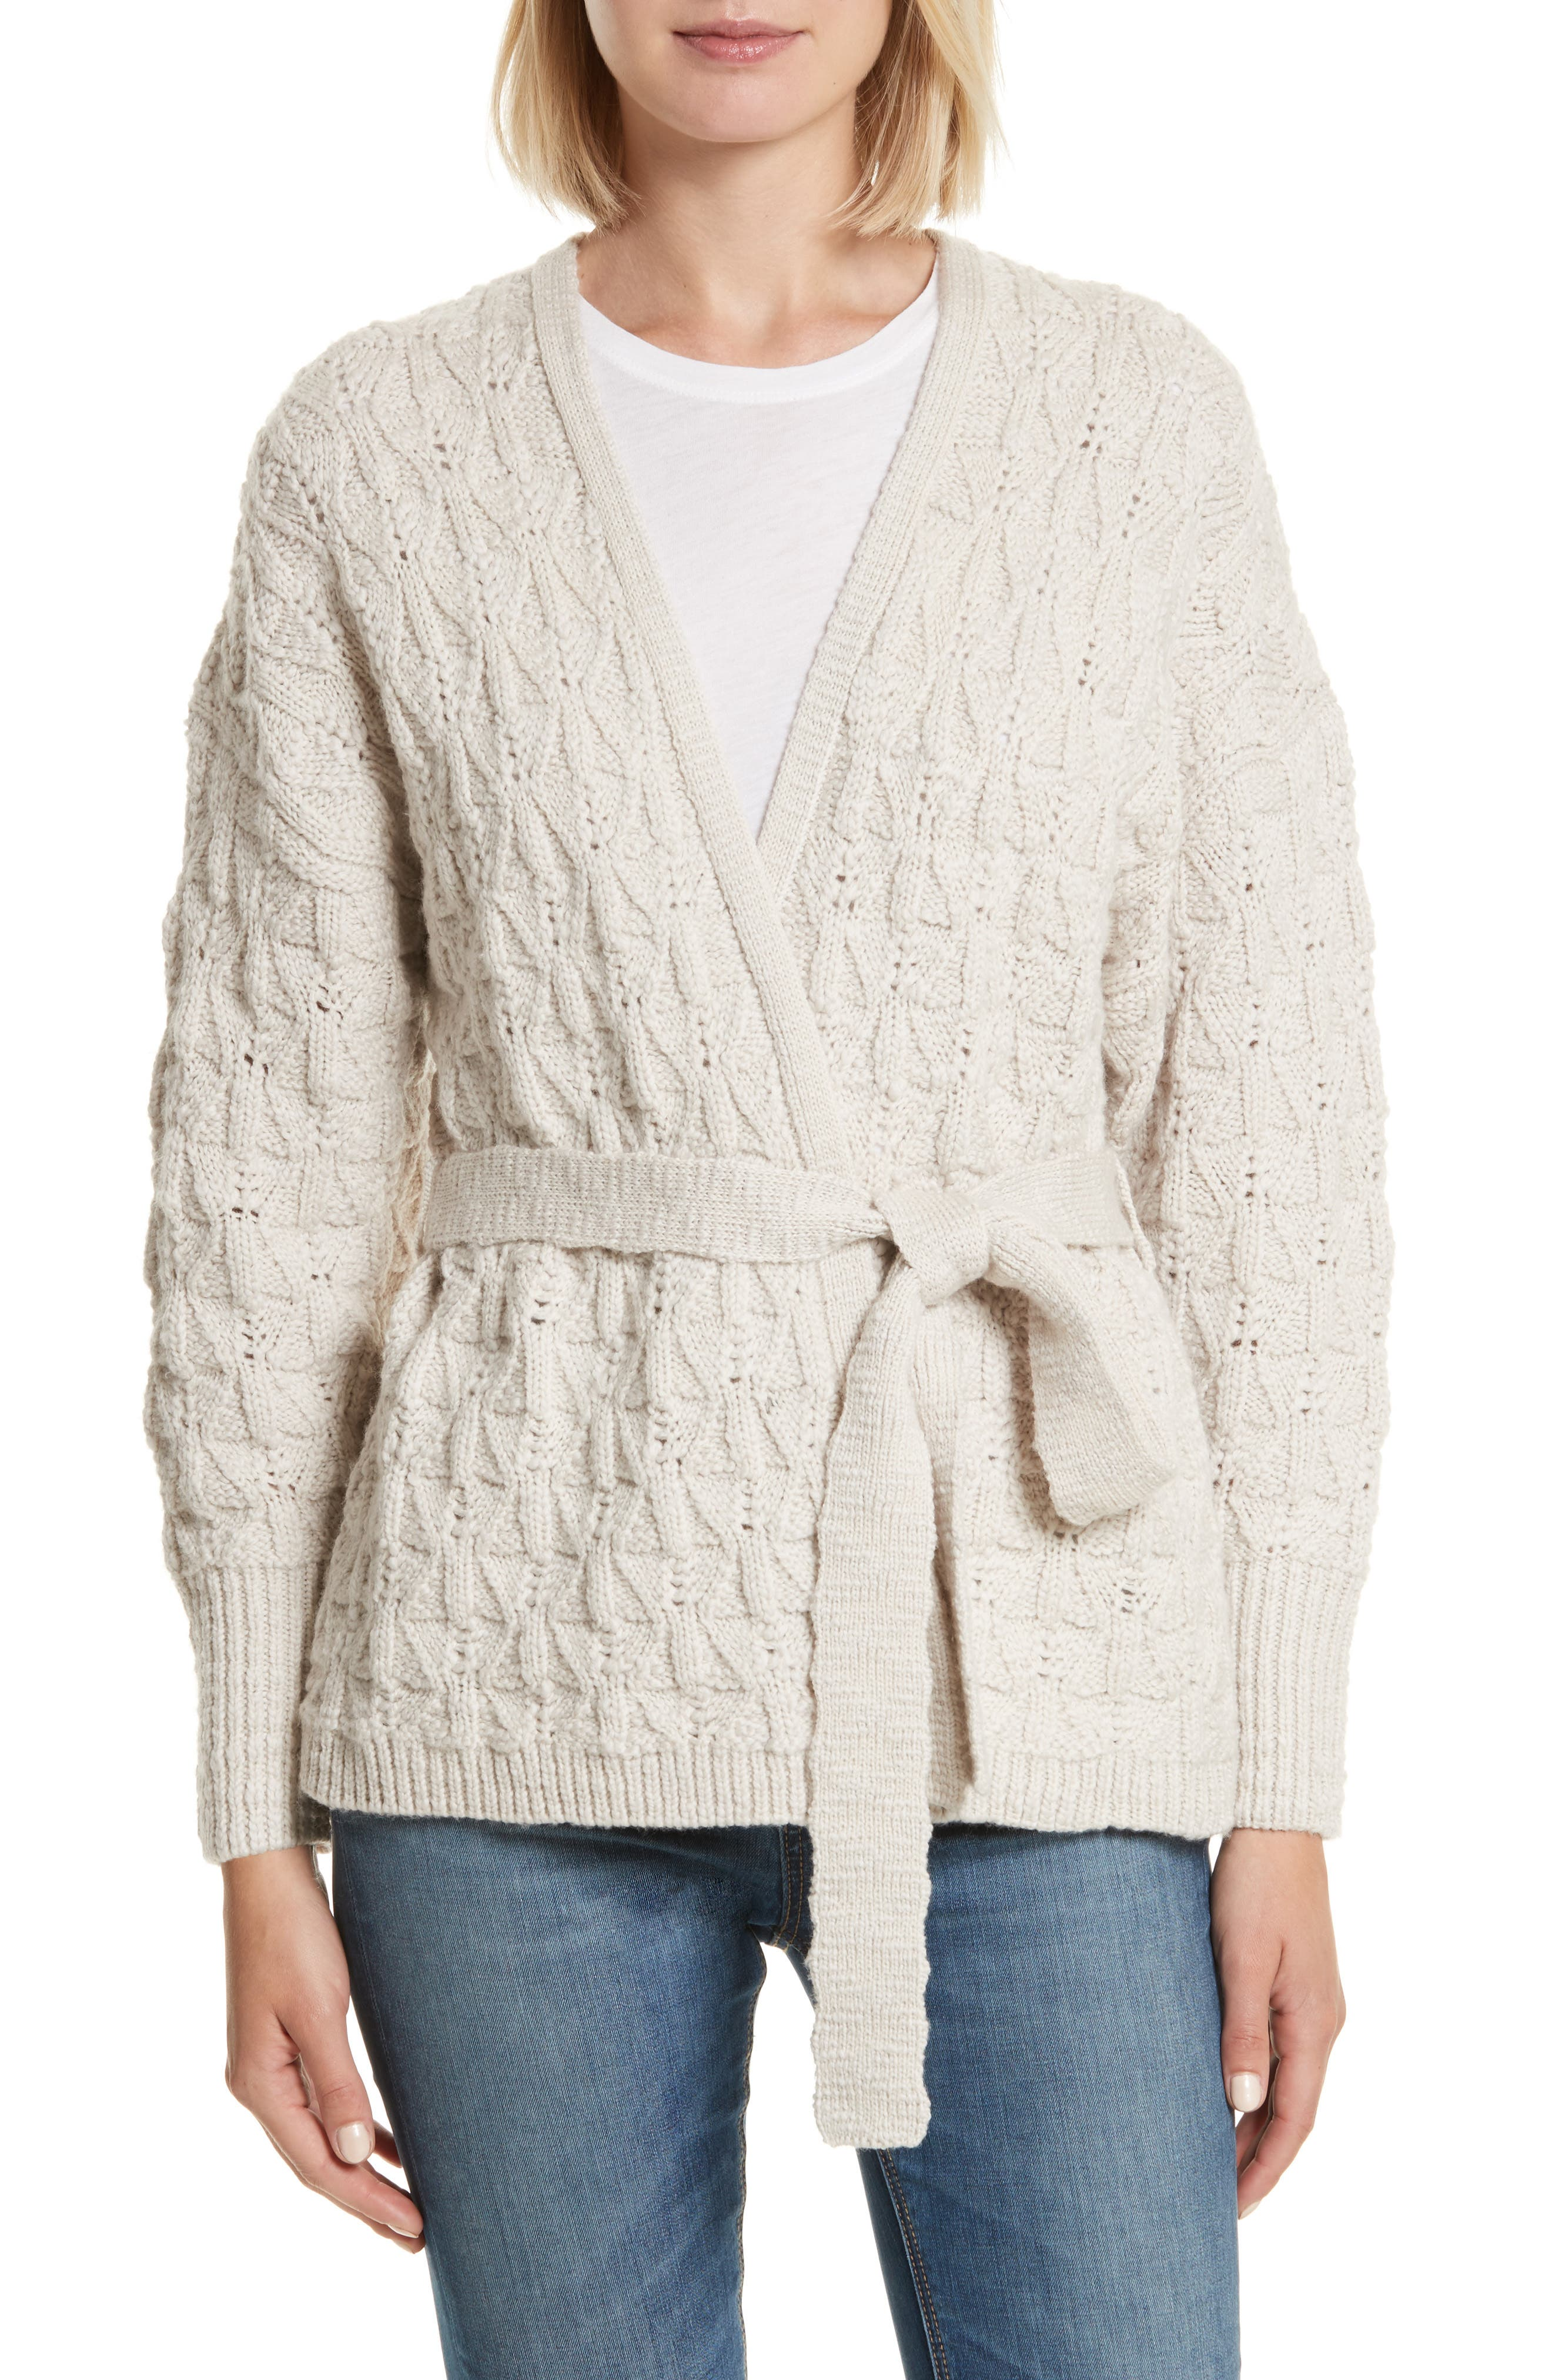 Belted Merino Wool Cardigan,                             Main thumbnail 1, color,                             285